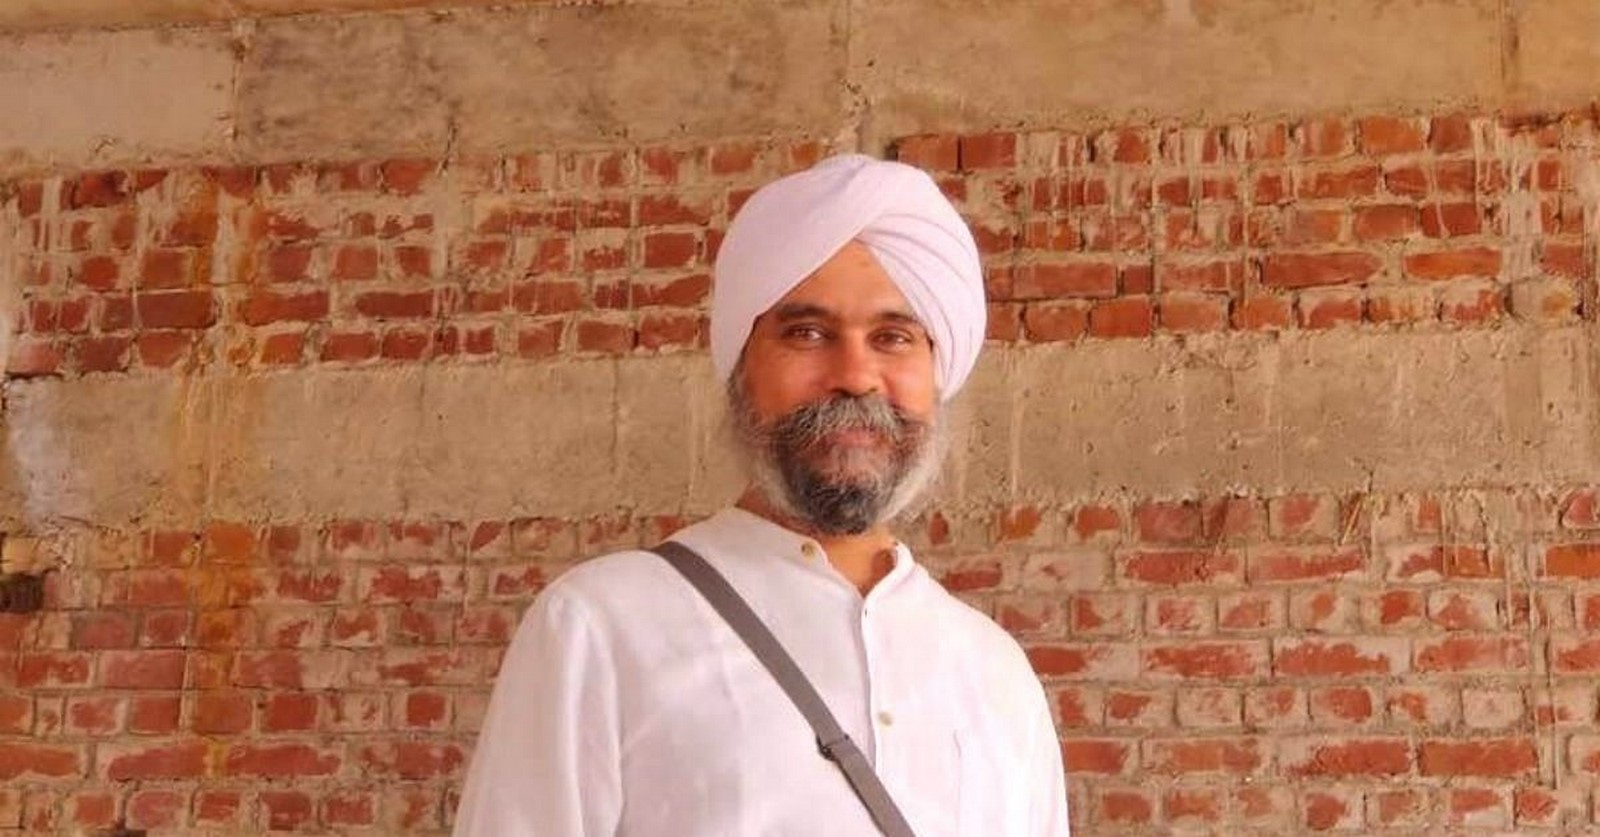 Malaksingh Gill - A pioneer of Sustainable Architecture in Regional India Sheet1